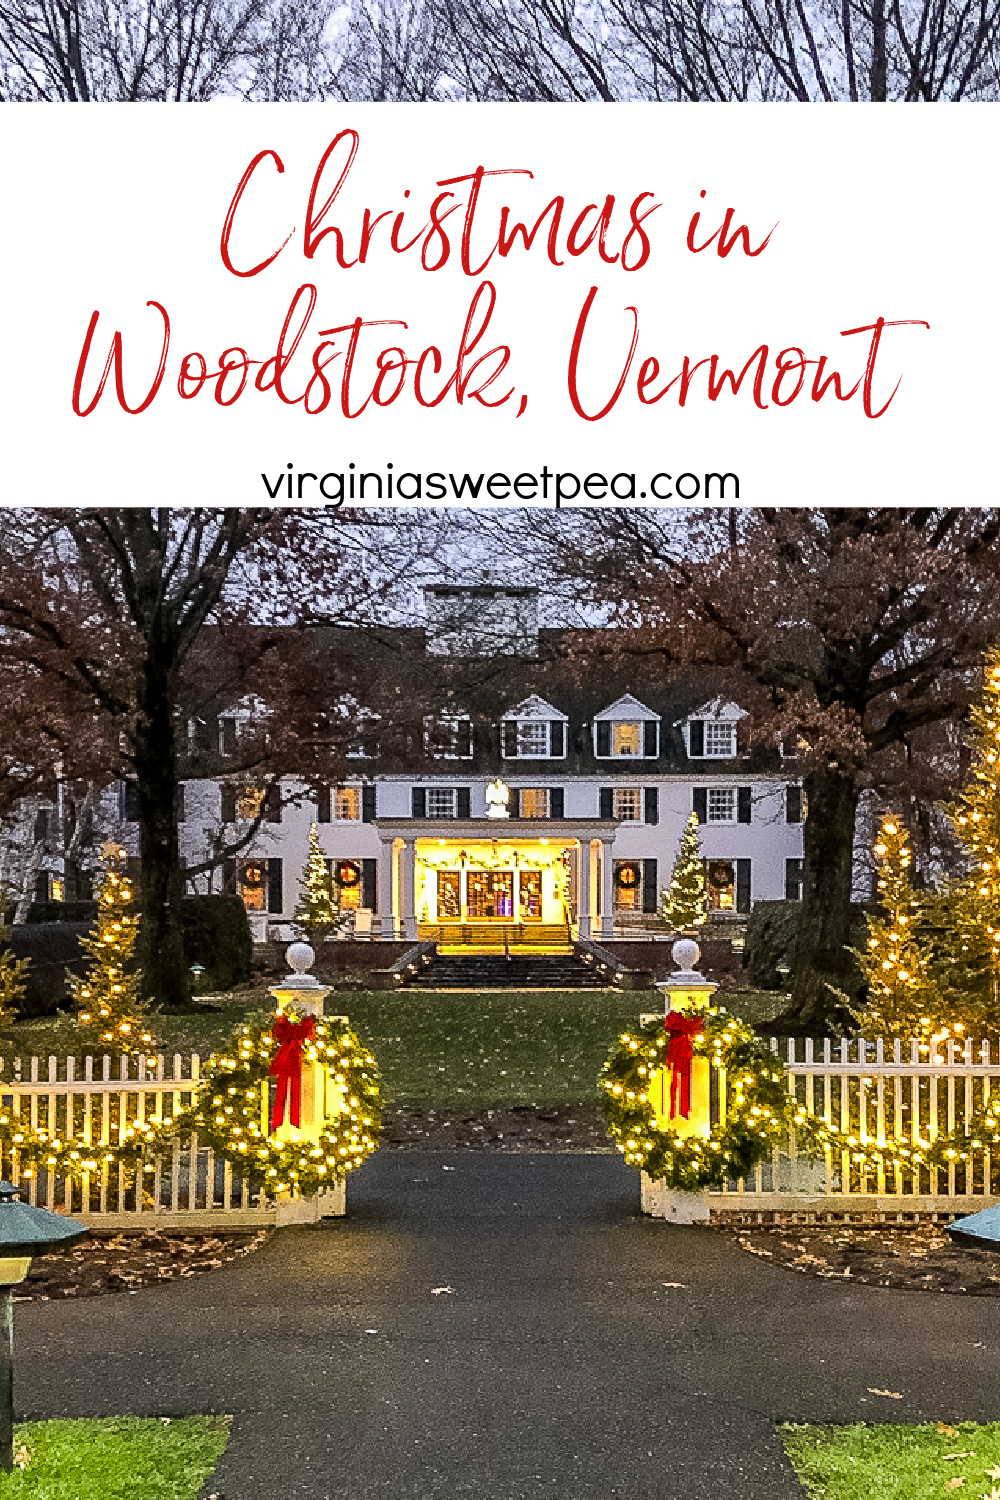 Step into a Vermont town that is straight out of a Hallmark movie!  See the charming details of Christmas in the town of Woodstock, Vermont. via @spaula